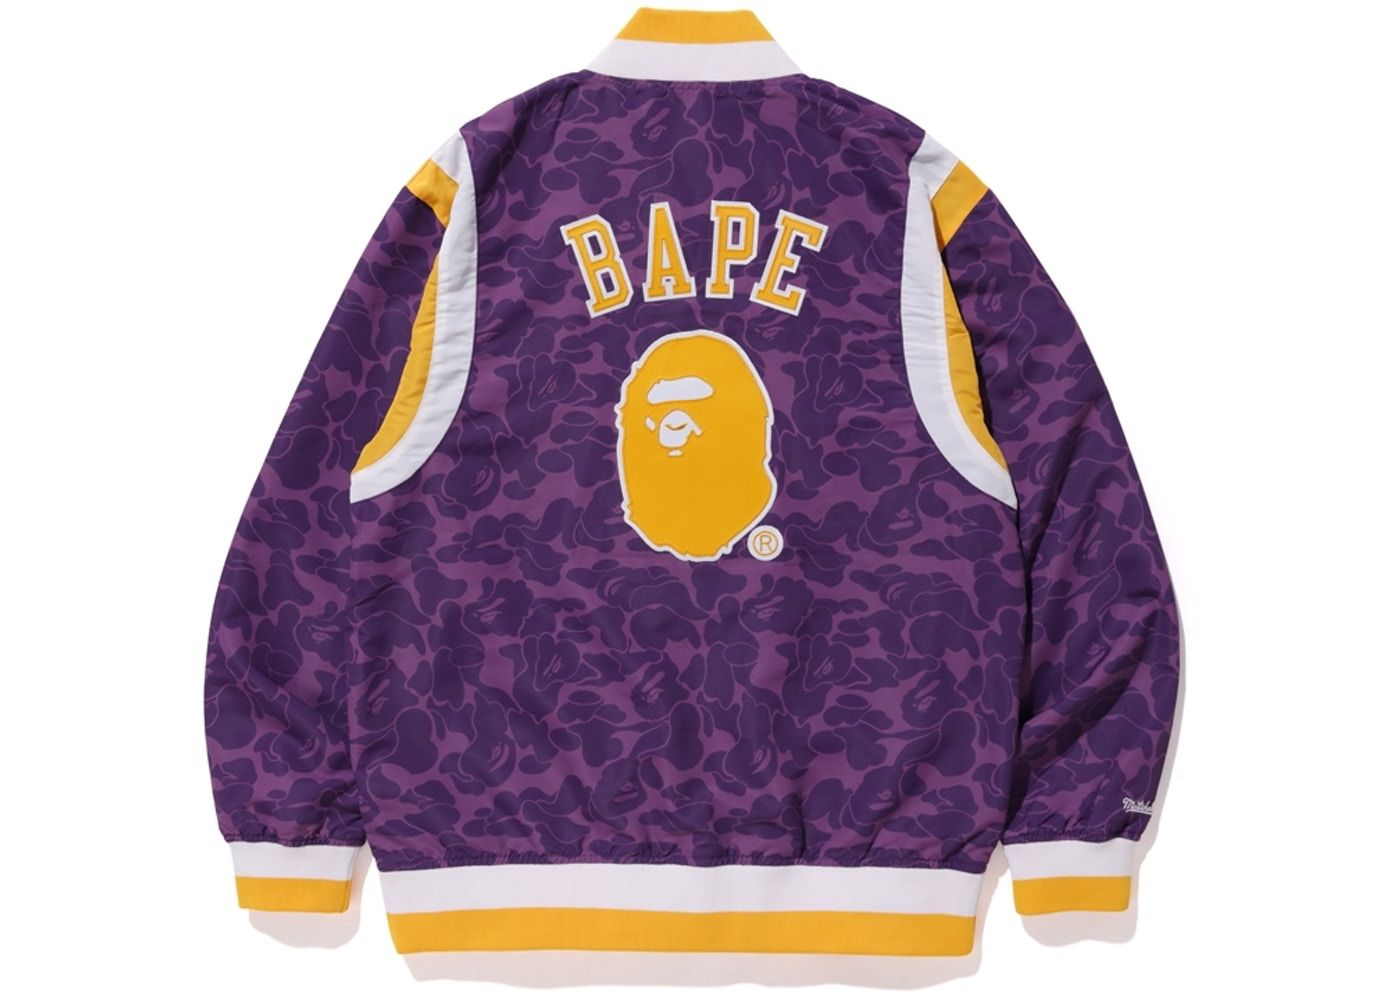 BAPE X Mitchell & Ness Lakers Warm Up Jacket Purple